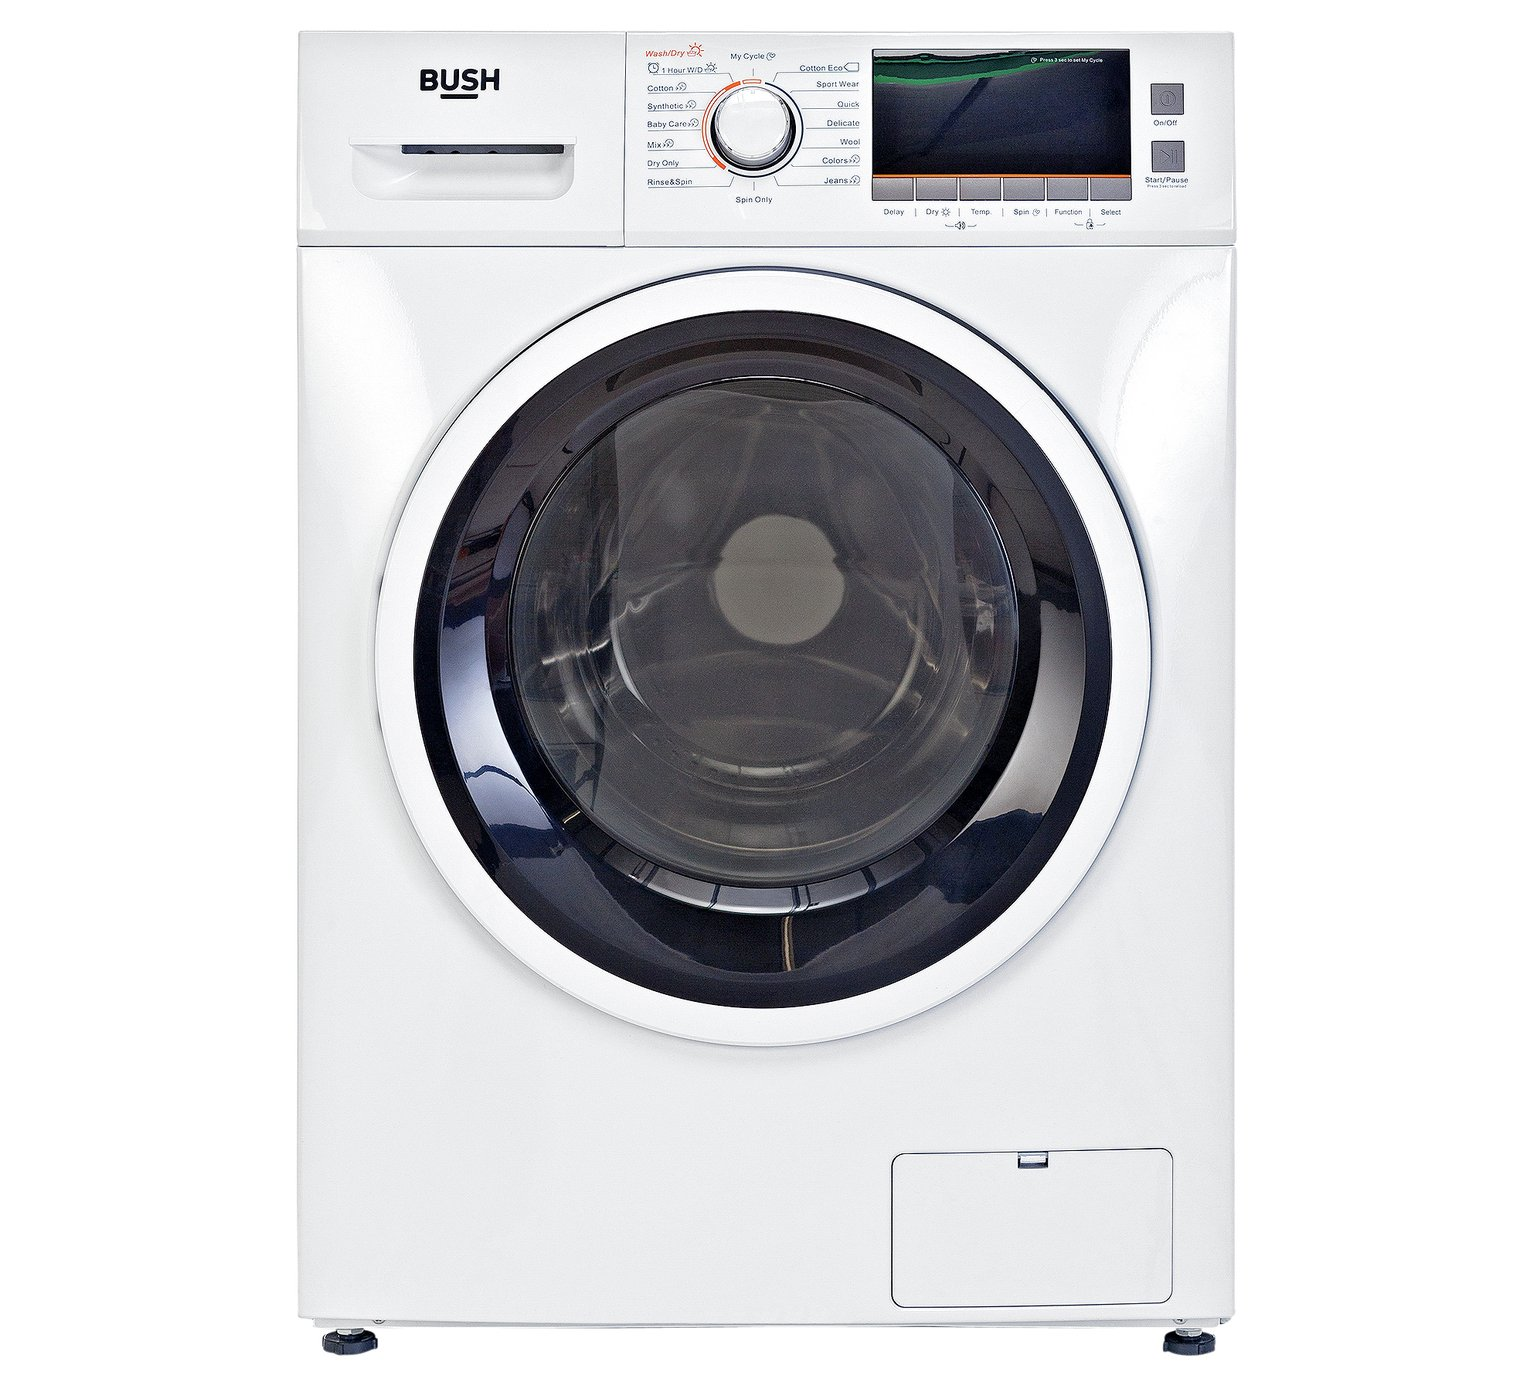 Bush WDNSX86W 8KG / 6KG 1400 SpinWasher Dryer - White by Bush 536/9849